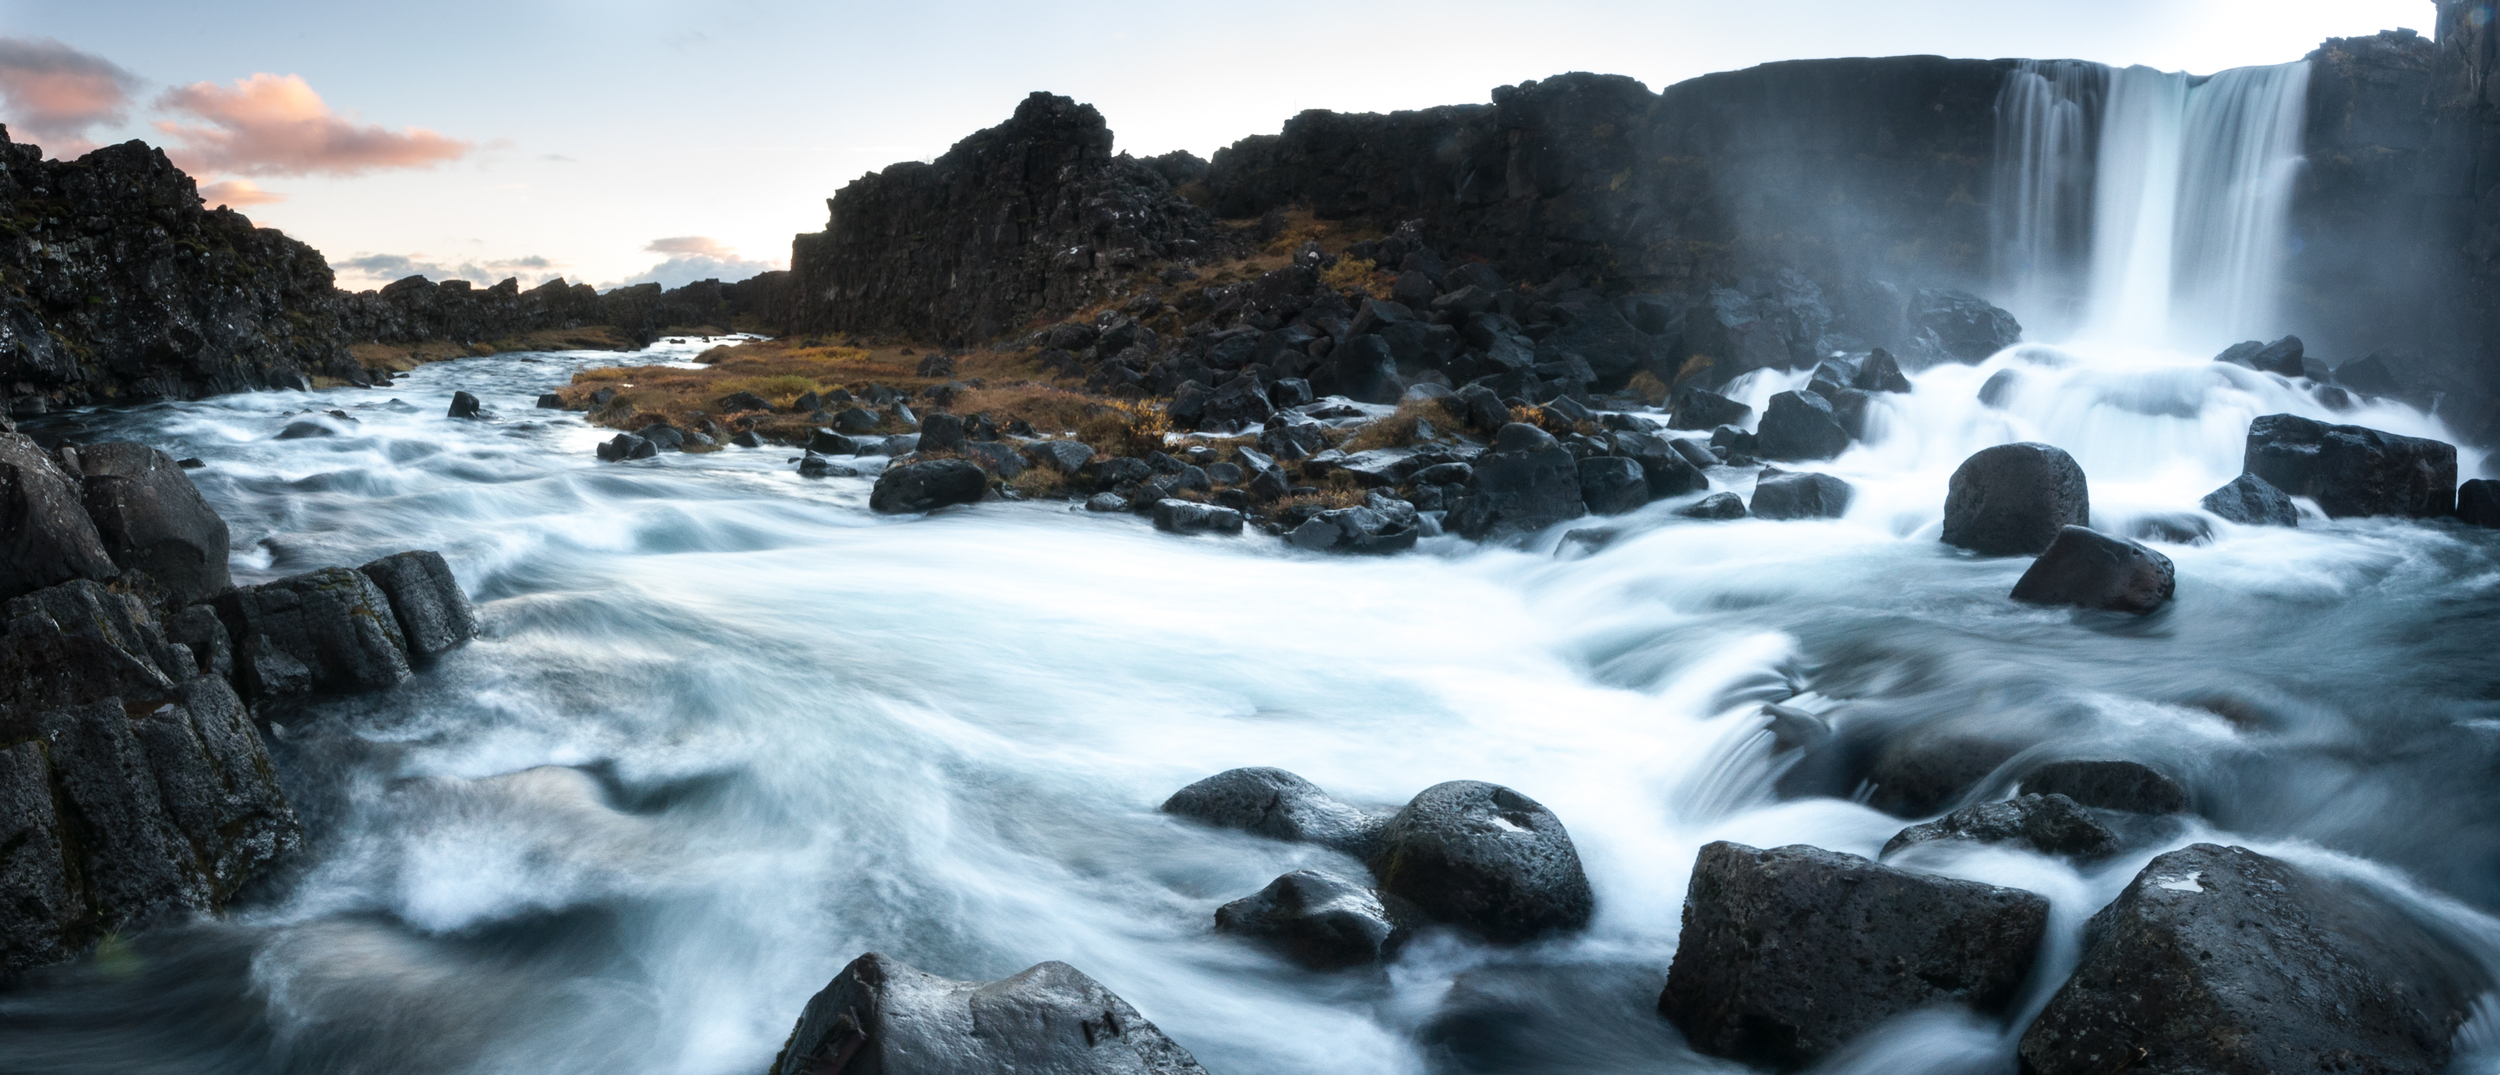 Öxarárfoss, Þingvellir National Park, Iceland October 2015